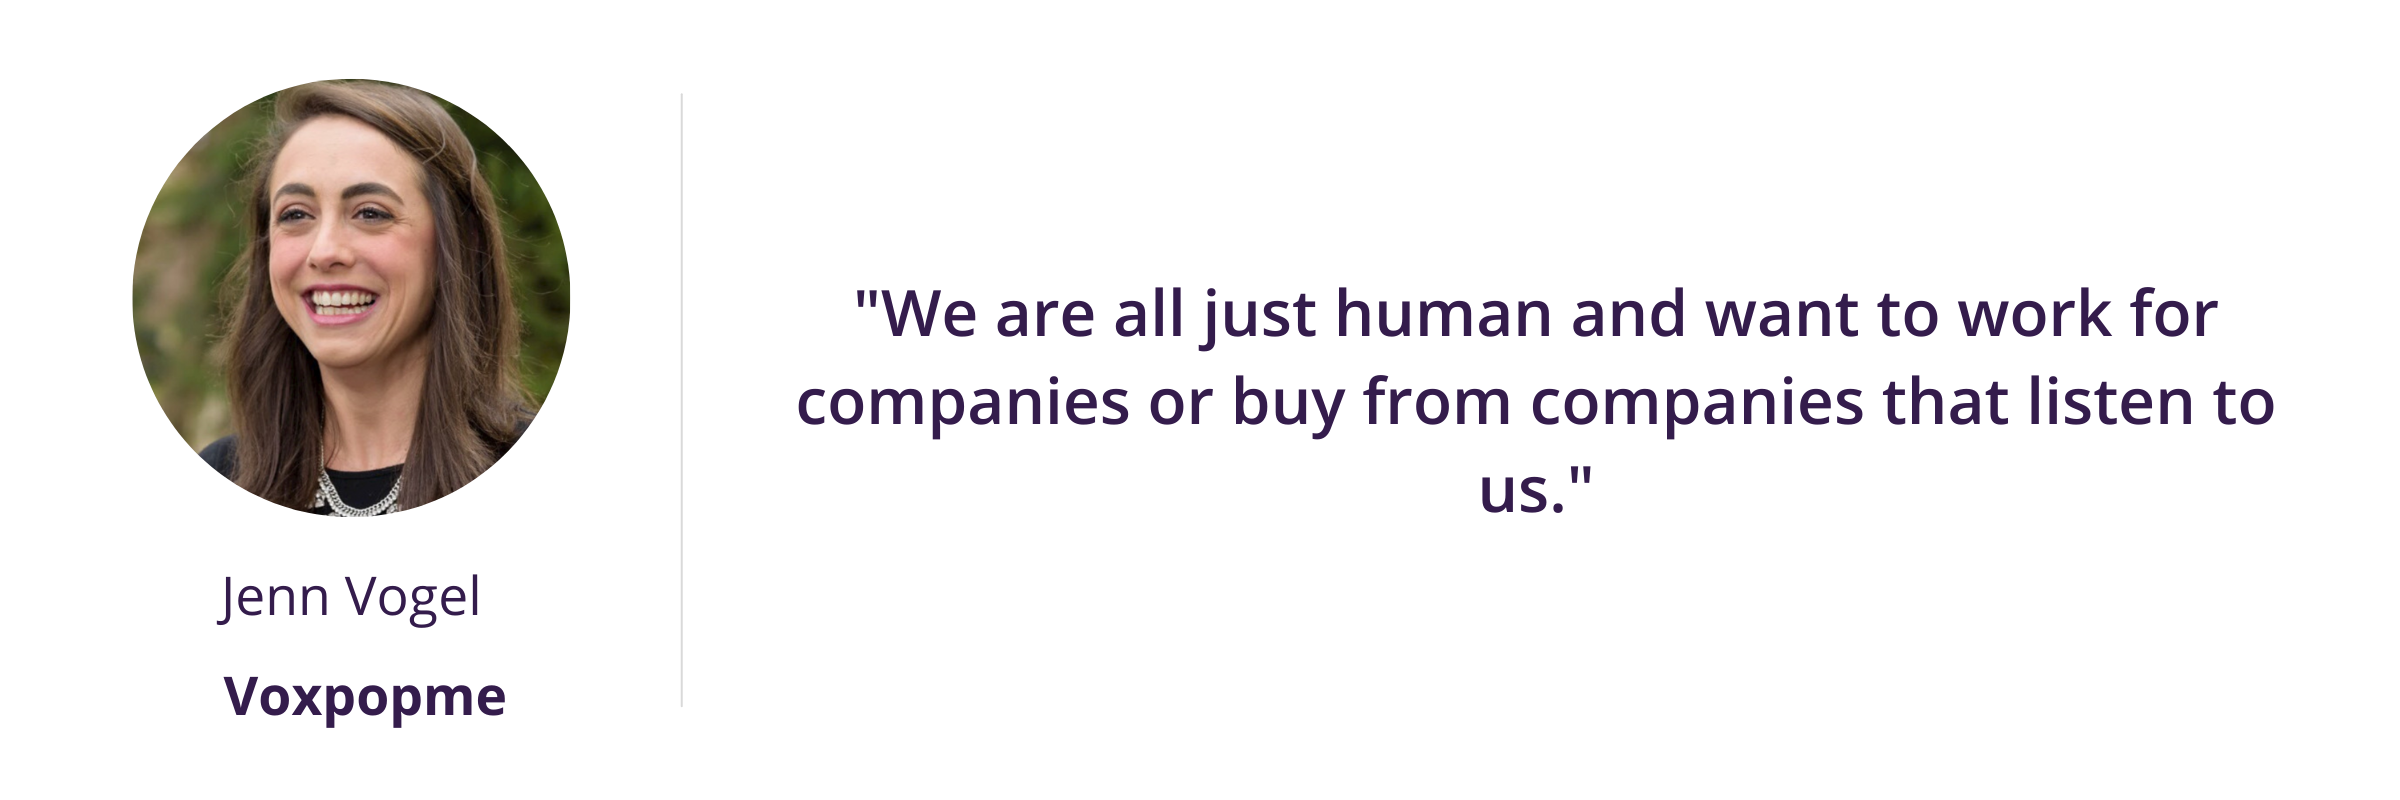 """""""We are all just human and want to work for companies or buy from companies that listen to us."""""""